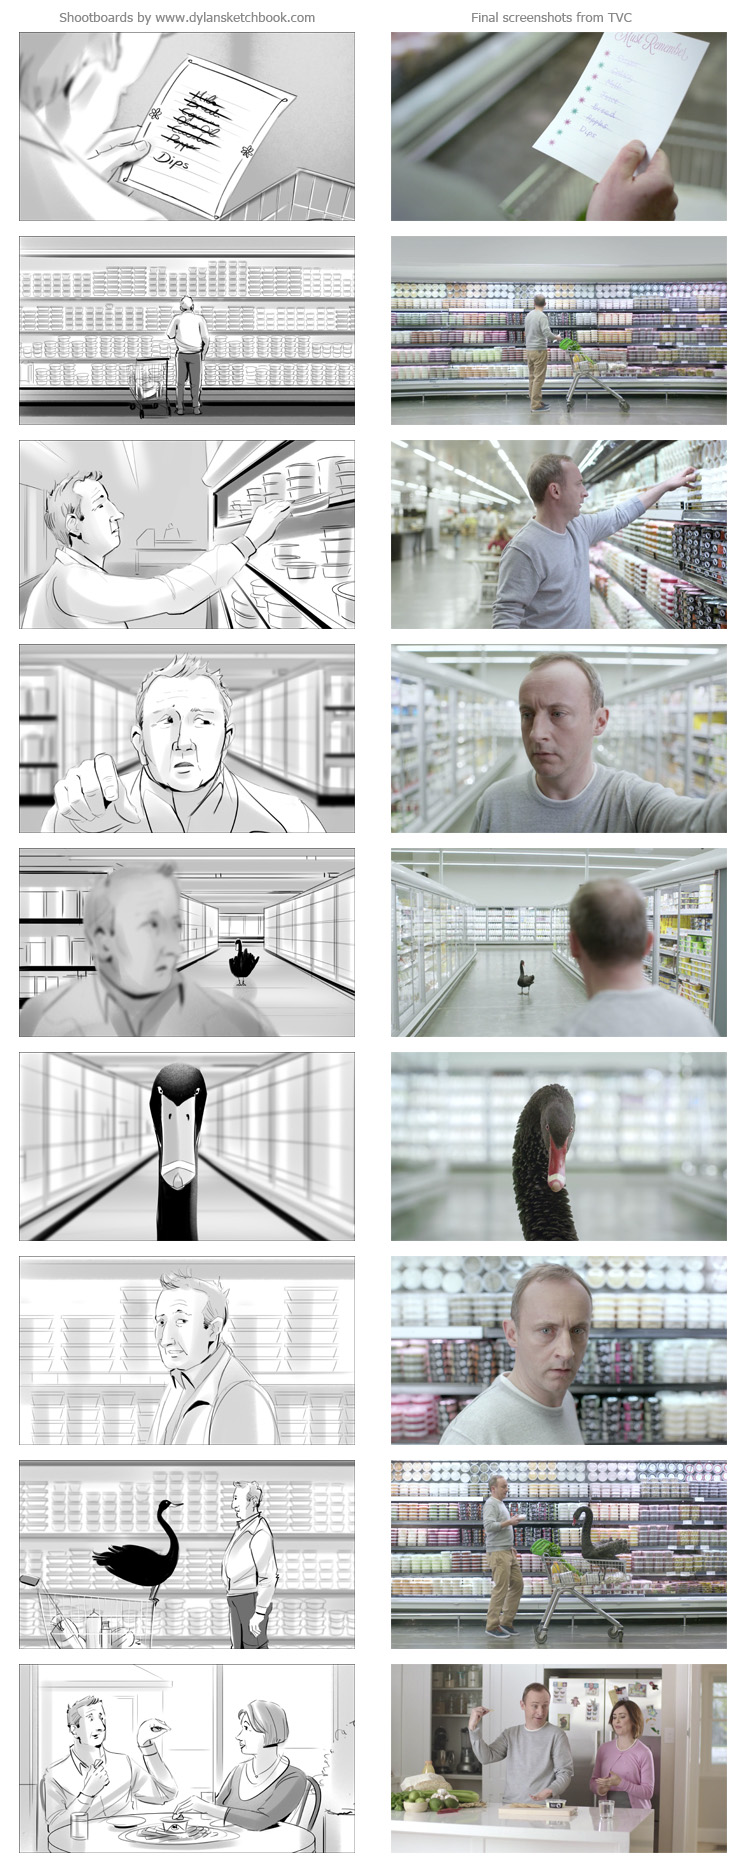 Black Swan storyboards and TVC screenshots